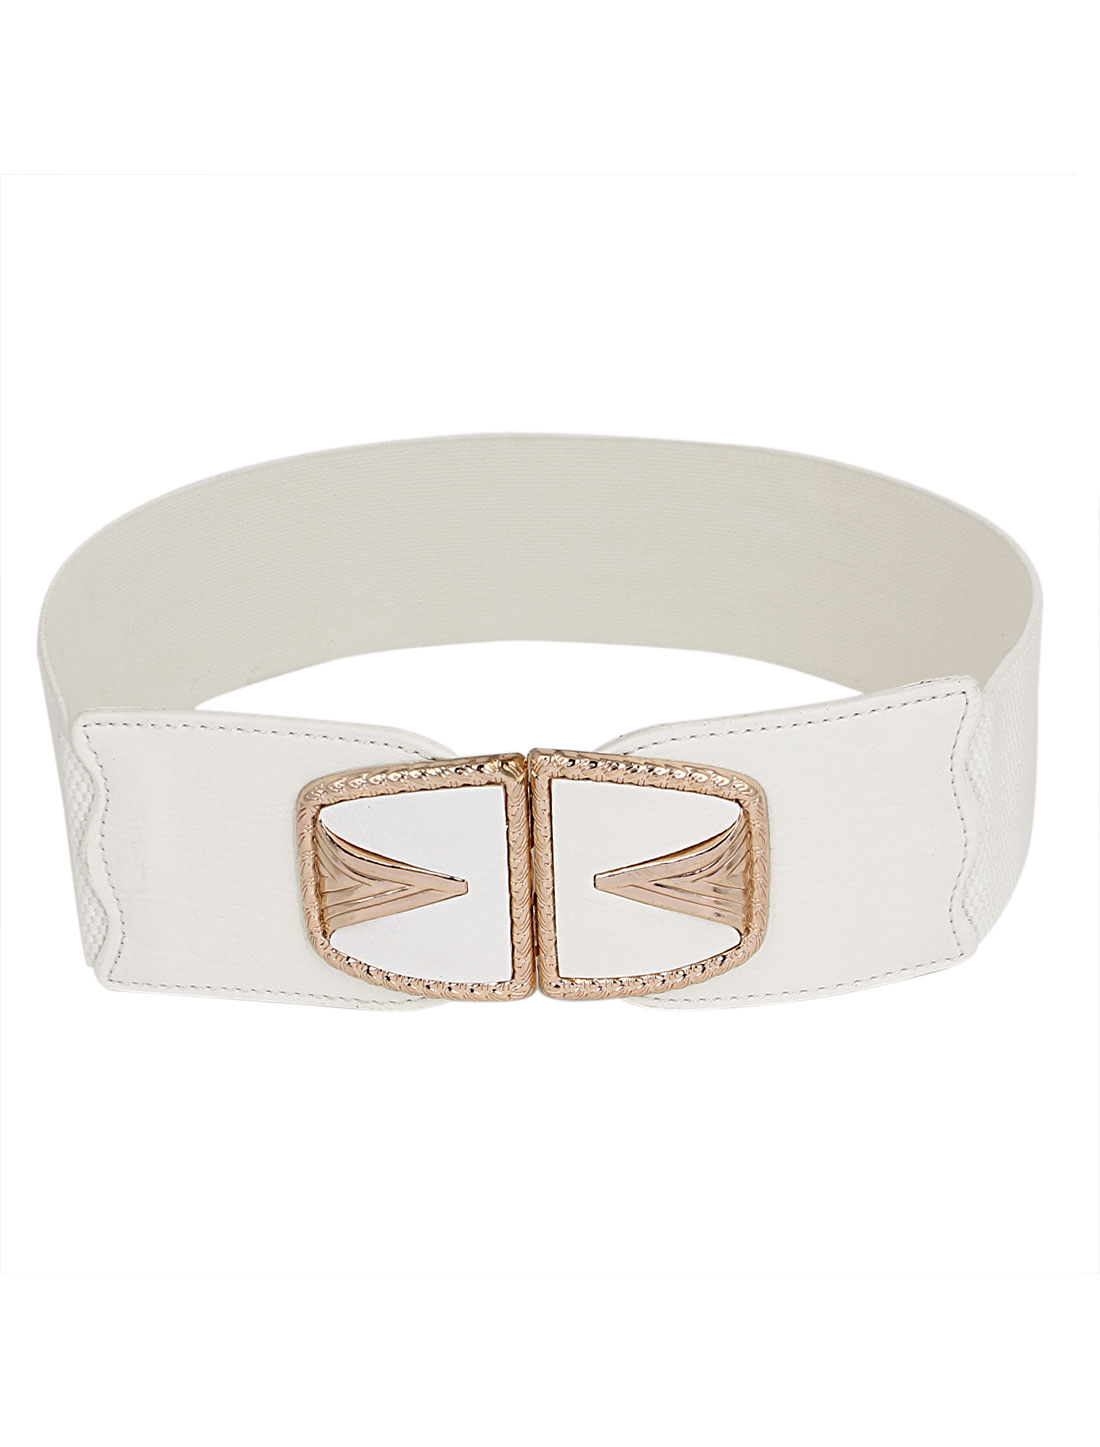 Women Metal Interlock Buckle Elastic Faux Leather Stretchy Waist Band Belt Waistband White